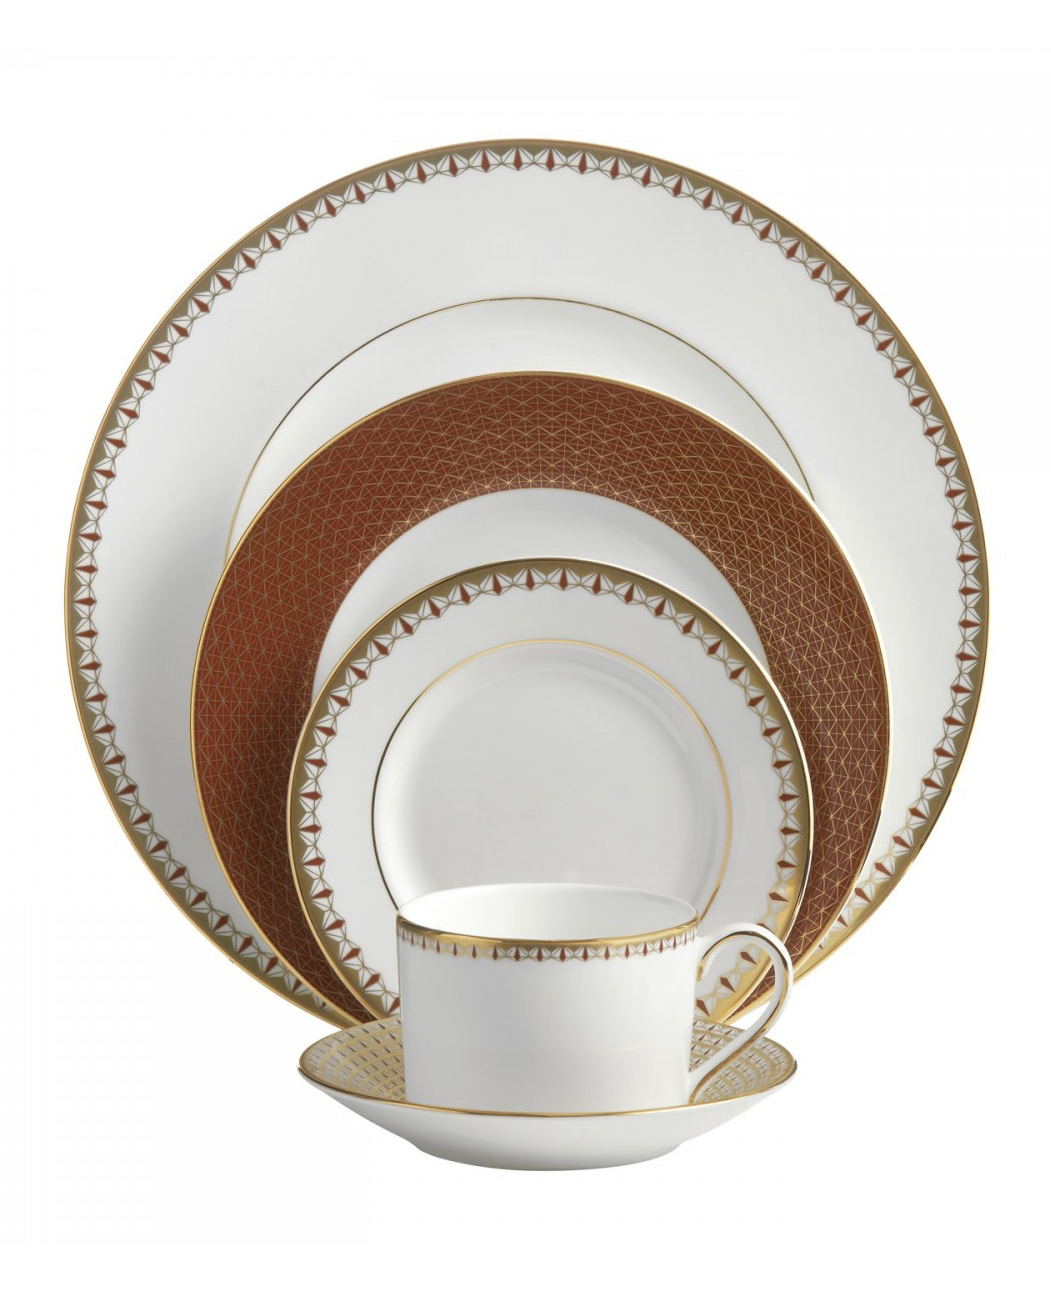 china-registry-vintage-charm-waterford-lismore-diamond-cinnabar-5-piece-place-setting-701587187442-1014.jpg